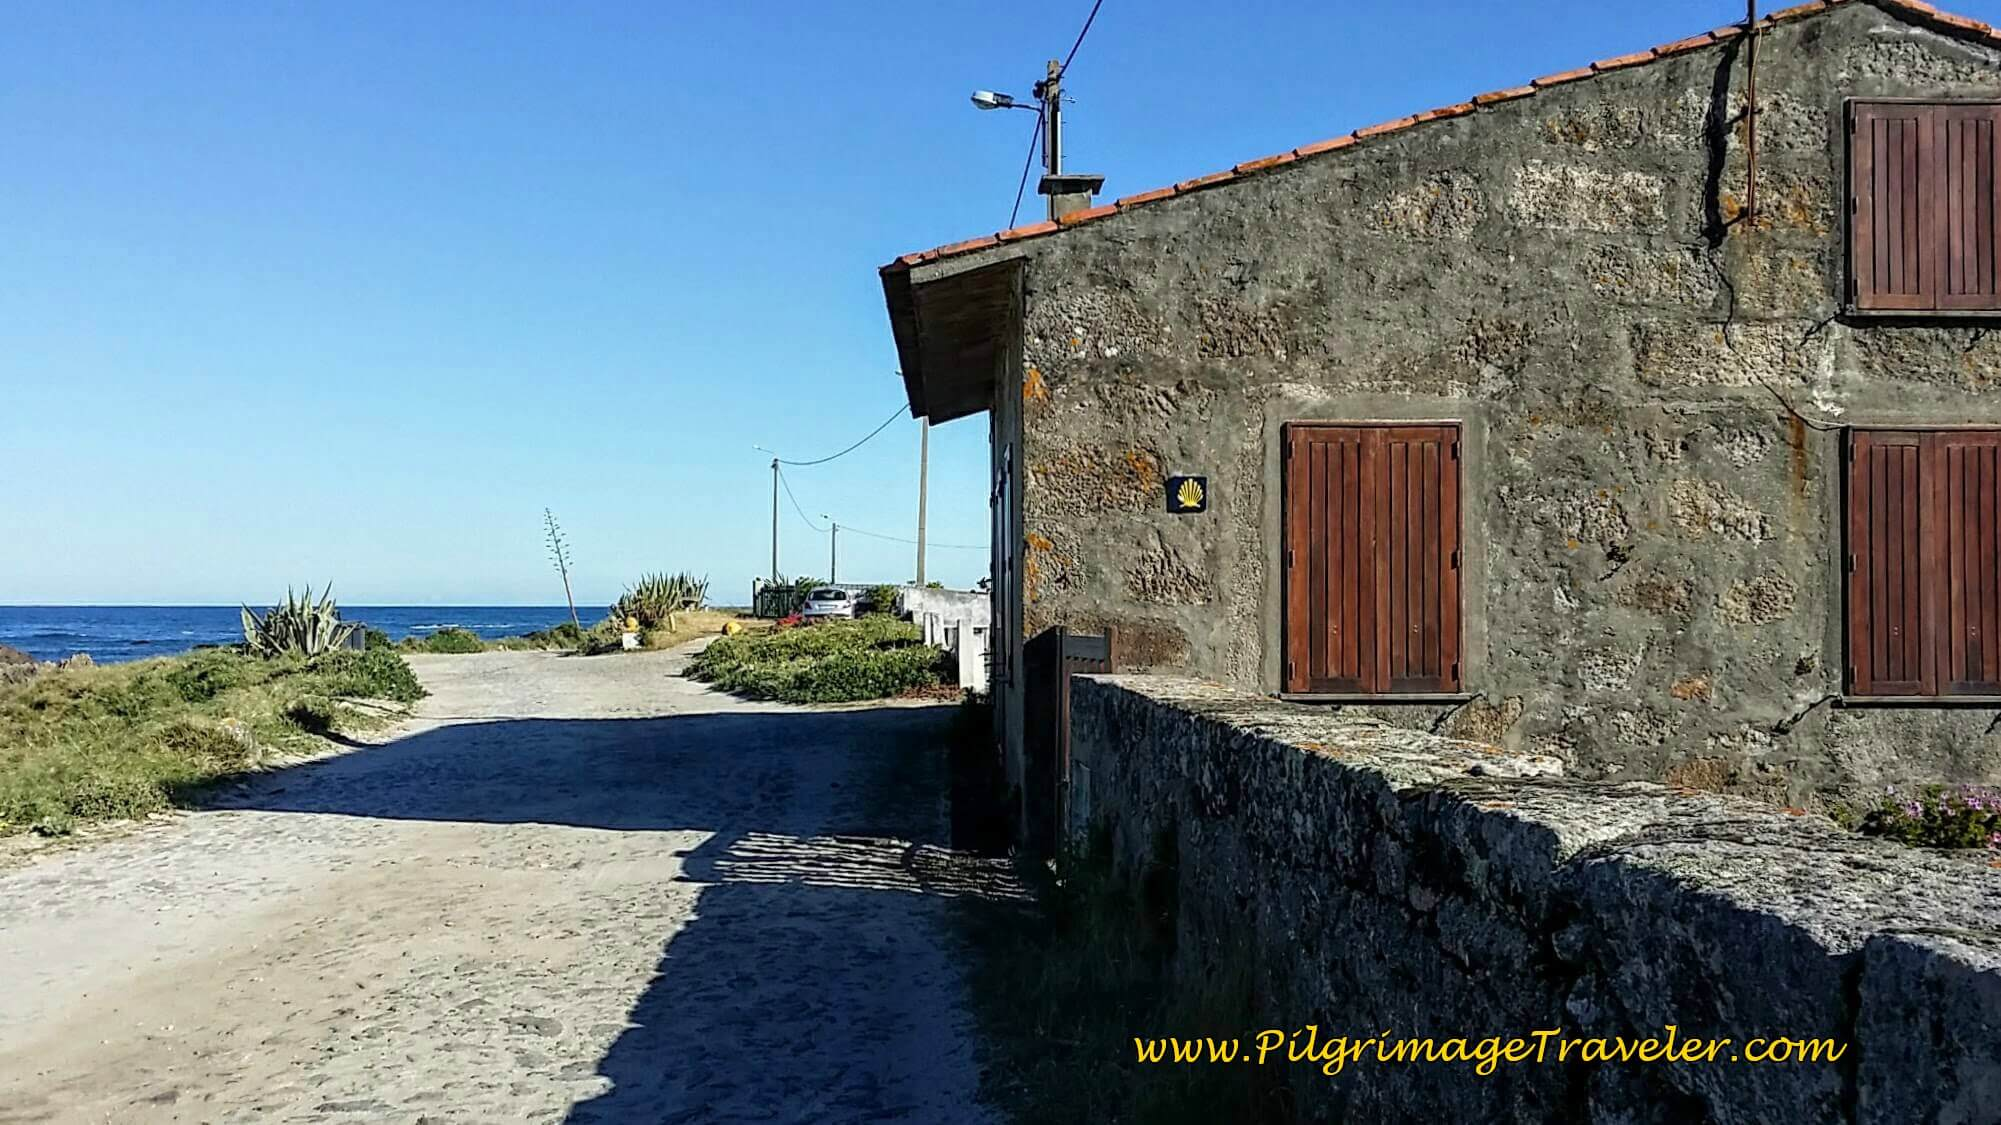 Home of Camino Angel with Waymark on day eighteen of the Camino Portugués on the Senda Litoral